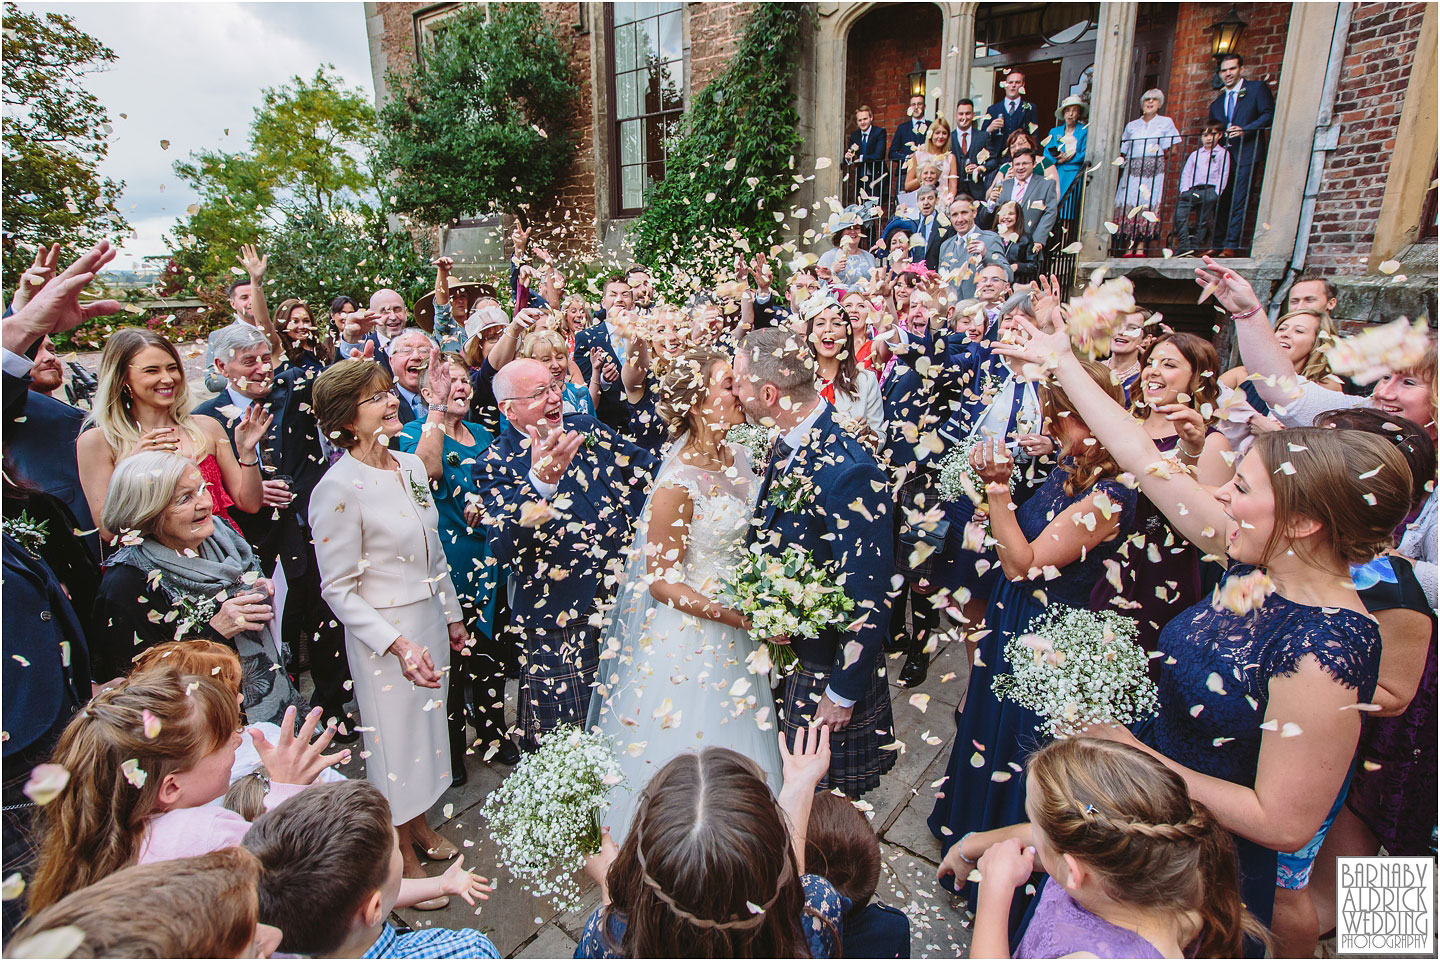 Confetti Wedding Photo at Rowton Caste Wedding Photos, Shropshire Wedding Photographer, Shrewsbury wedding venue, Amazing UK Castle Wedding